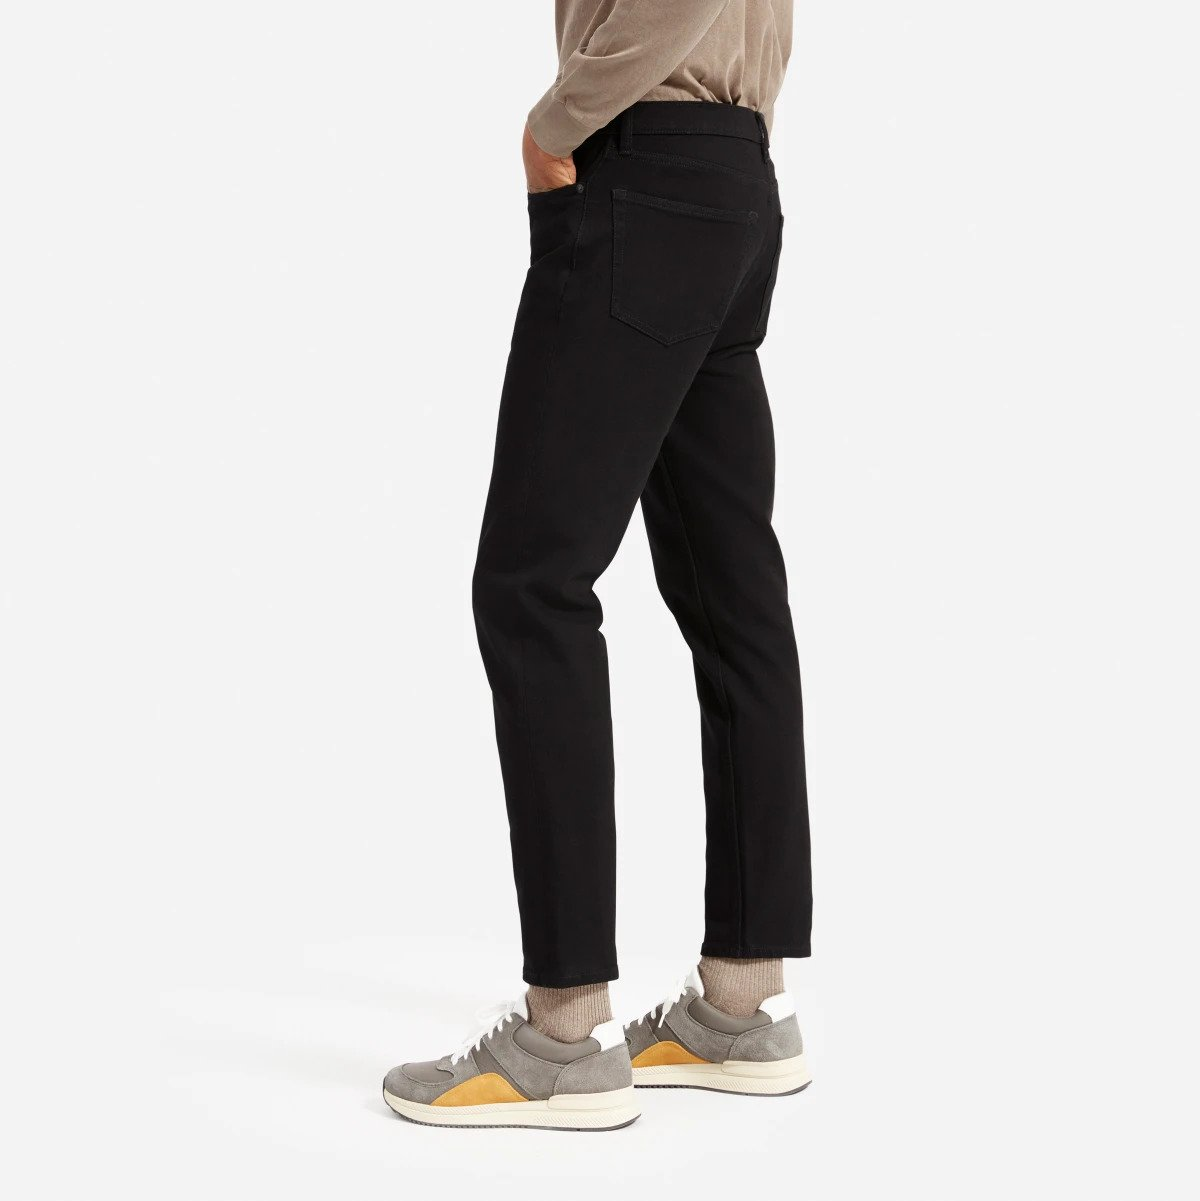 The Relaxed 4-Way Stretch Organic Jean